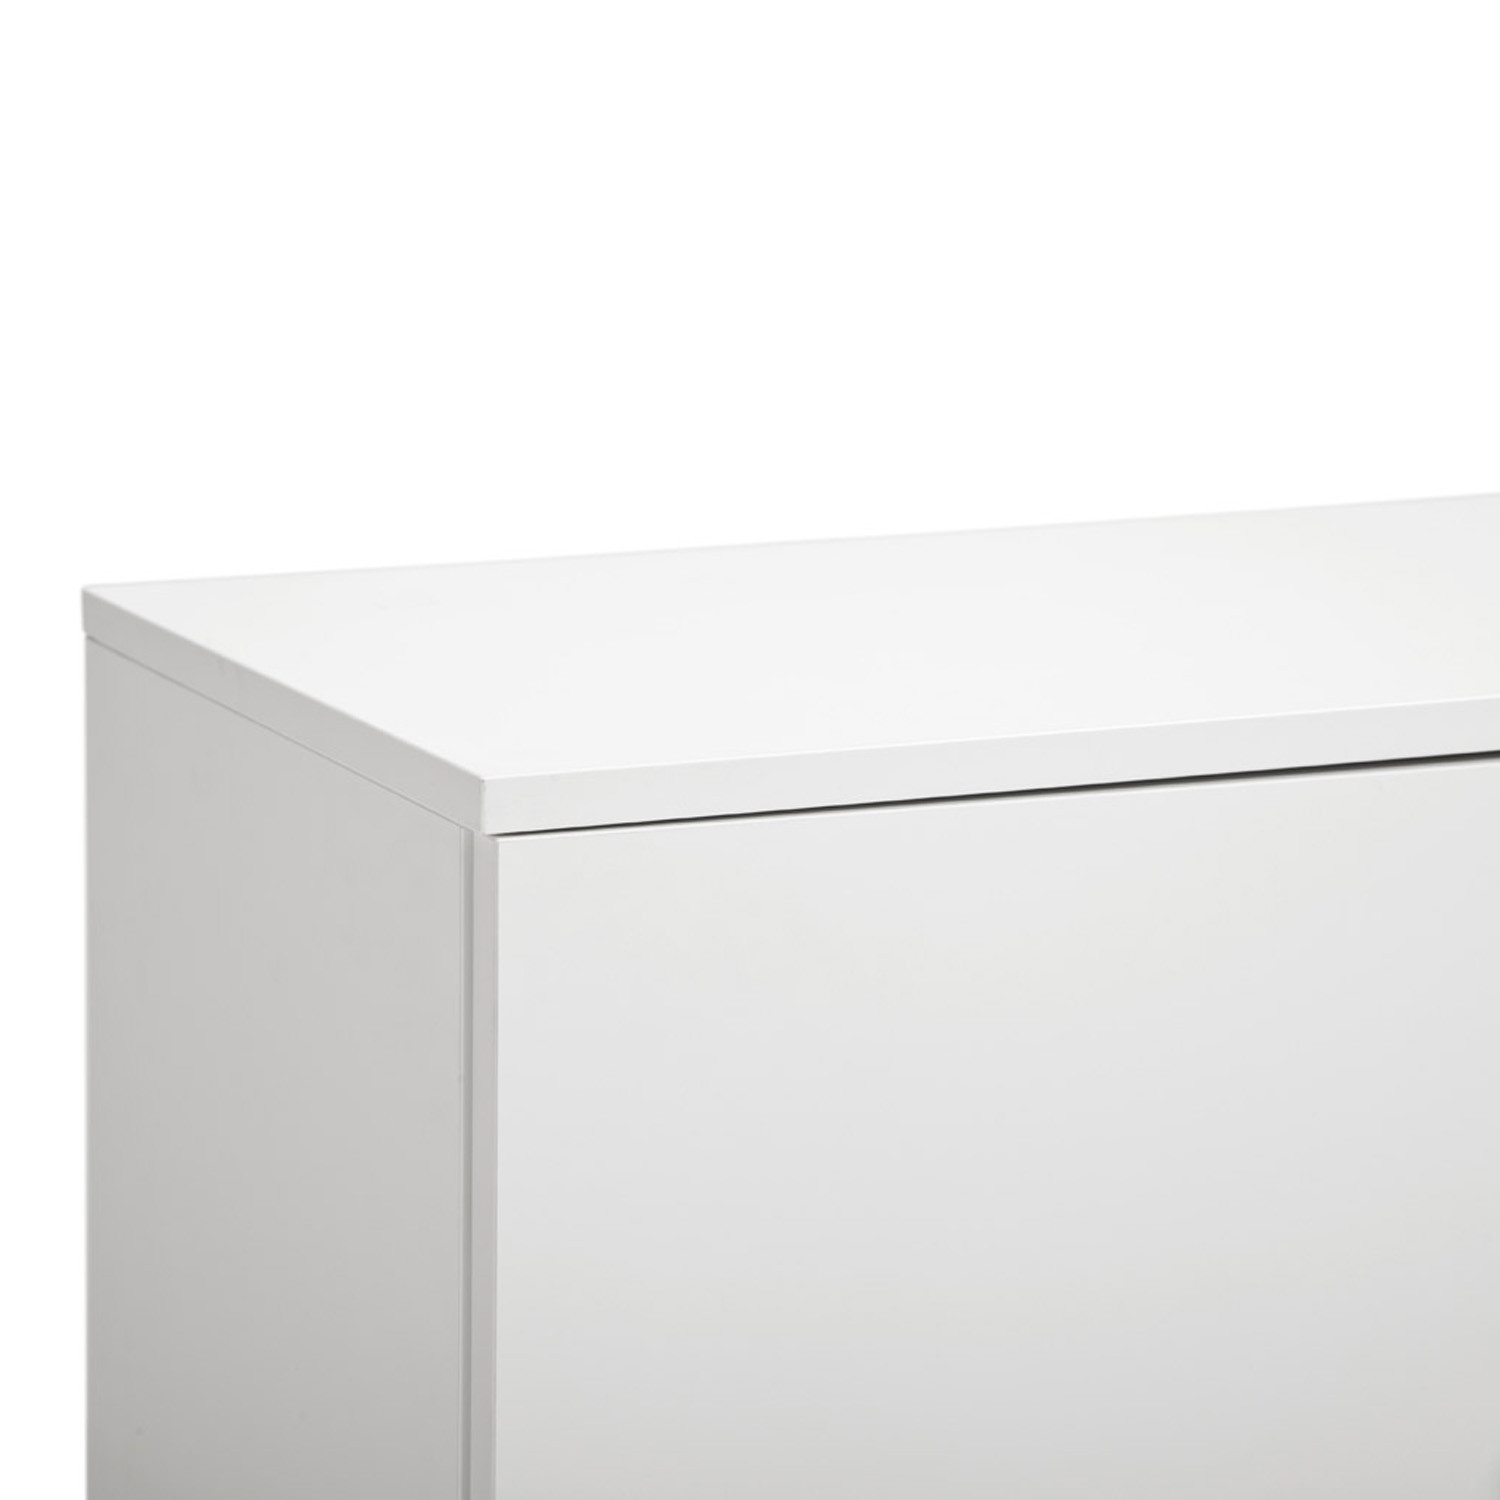 Ruba Office Cabinet  with Central Locking